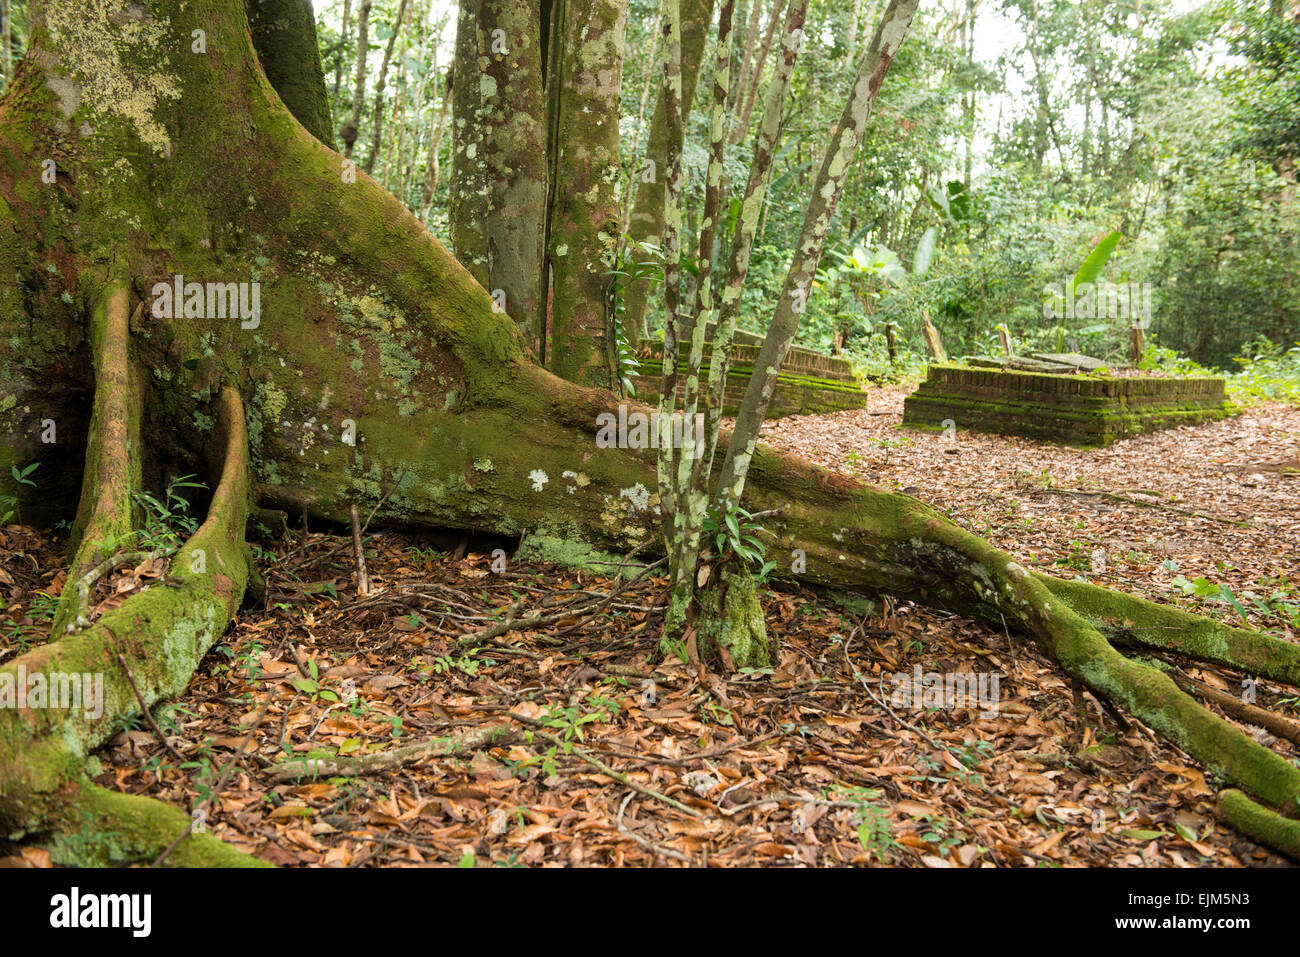 Graveyard at Jodensavanne, Suriname - Stock Image